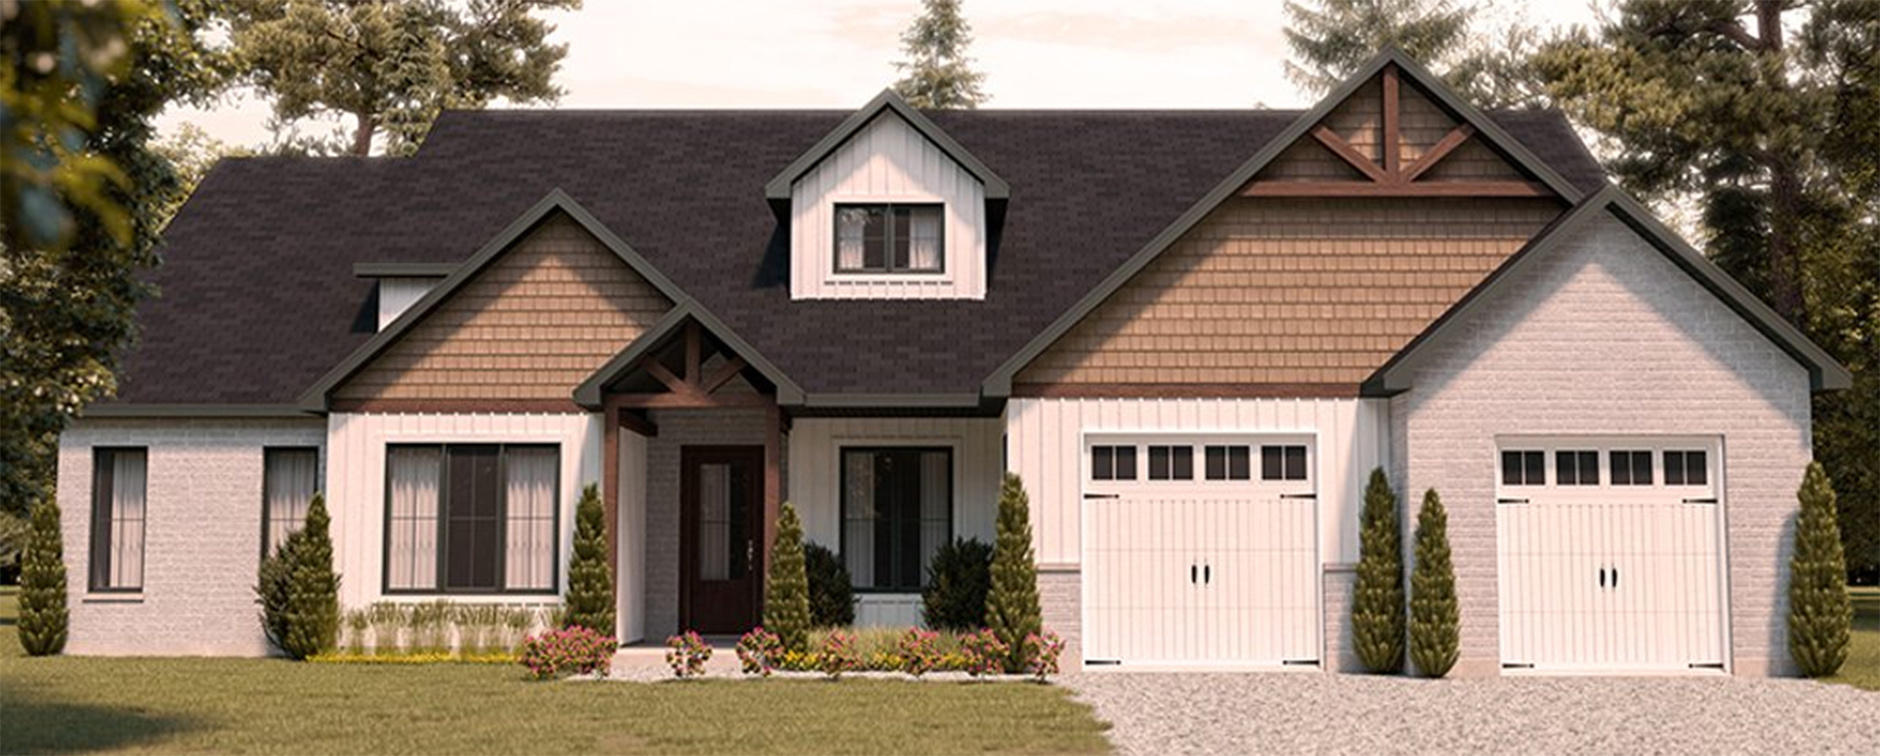 Craftsman House Plans and Floor Plans